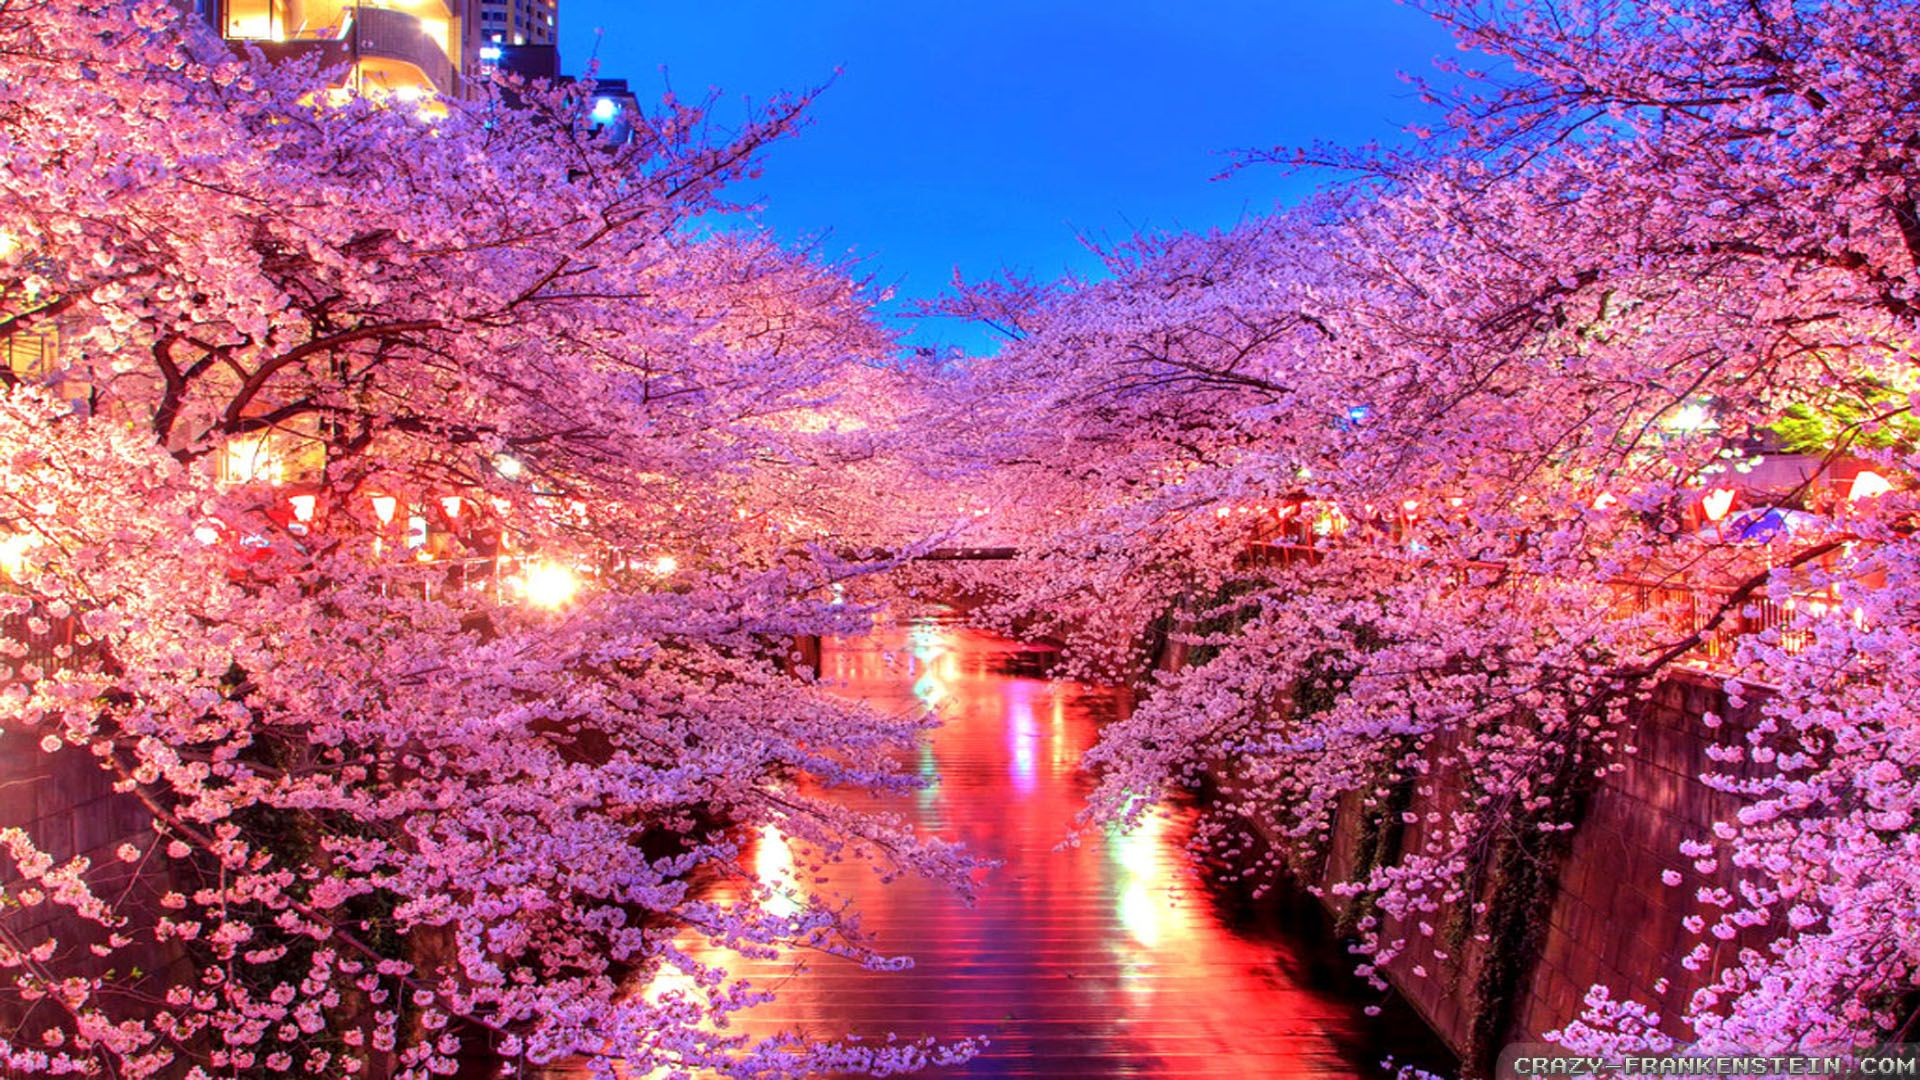 Spring Night Japan Spring Wallpaper Hd Phone Wallpapers Cherry Blossom Wallpaper Cherry Blossom Japan Cherry Blossom Background